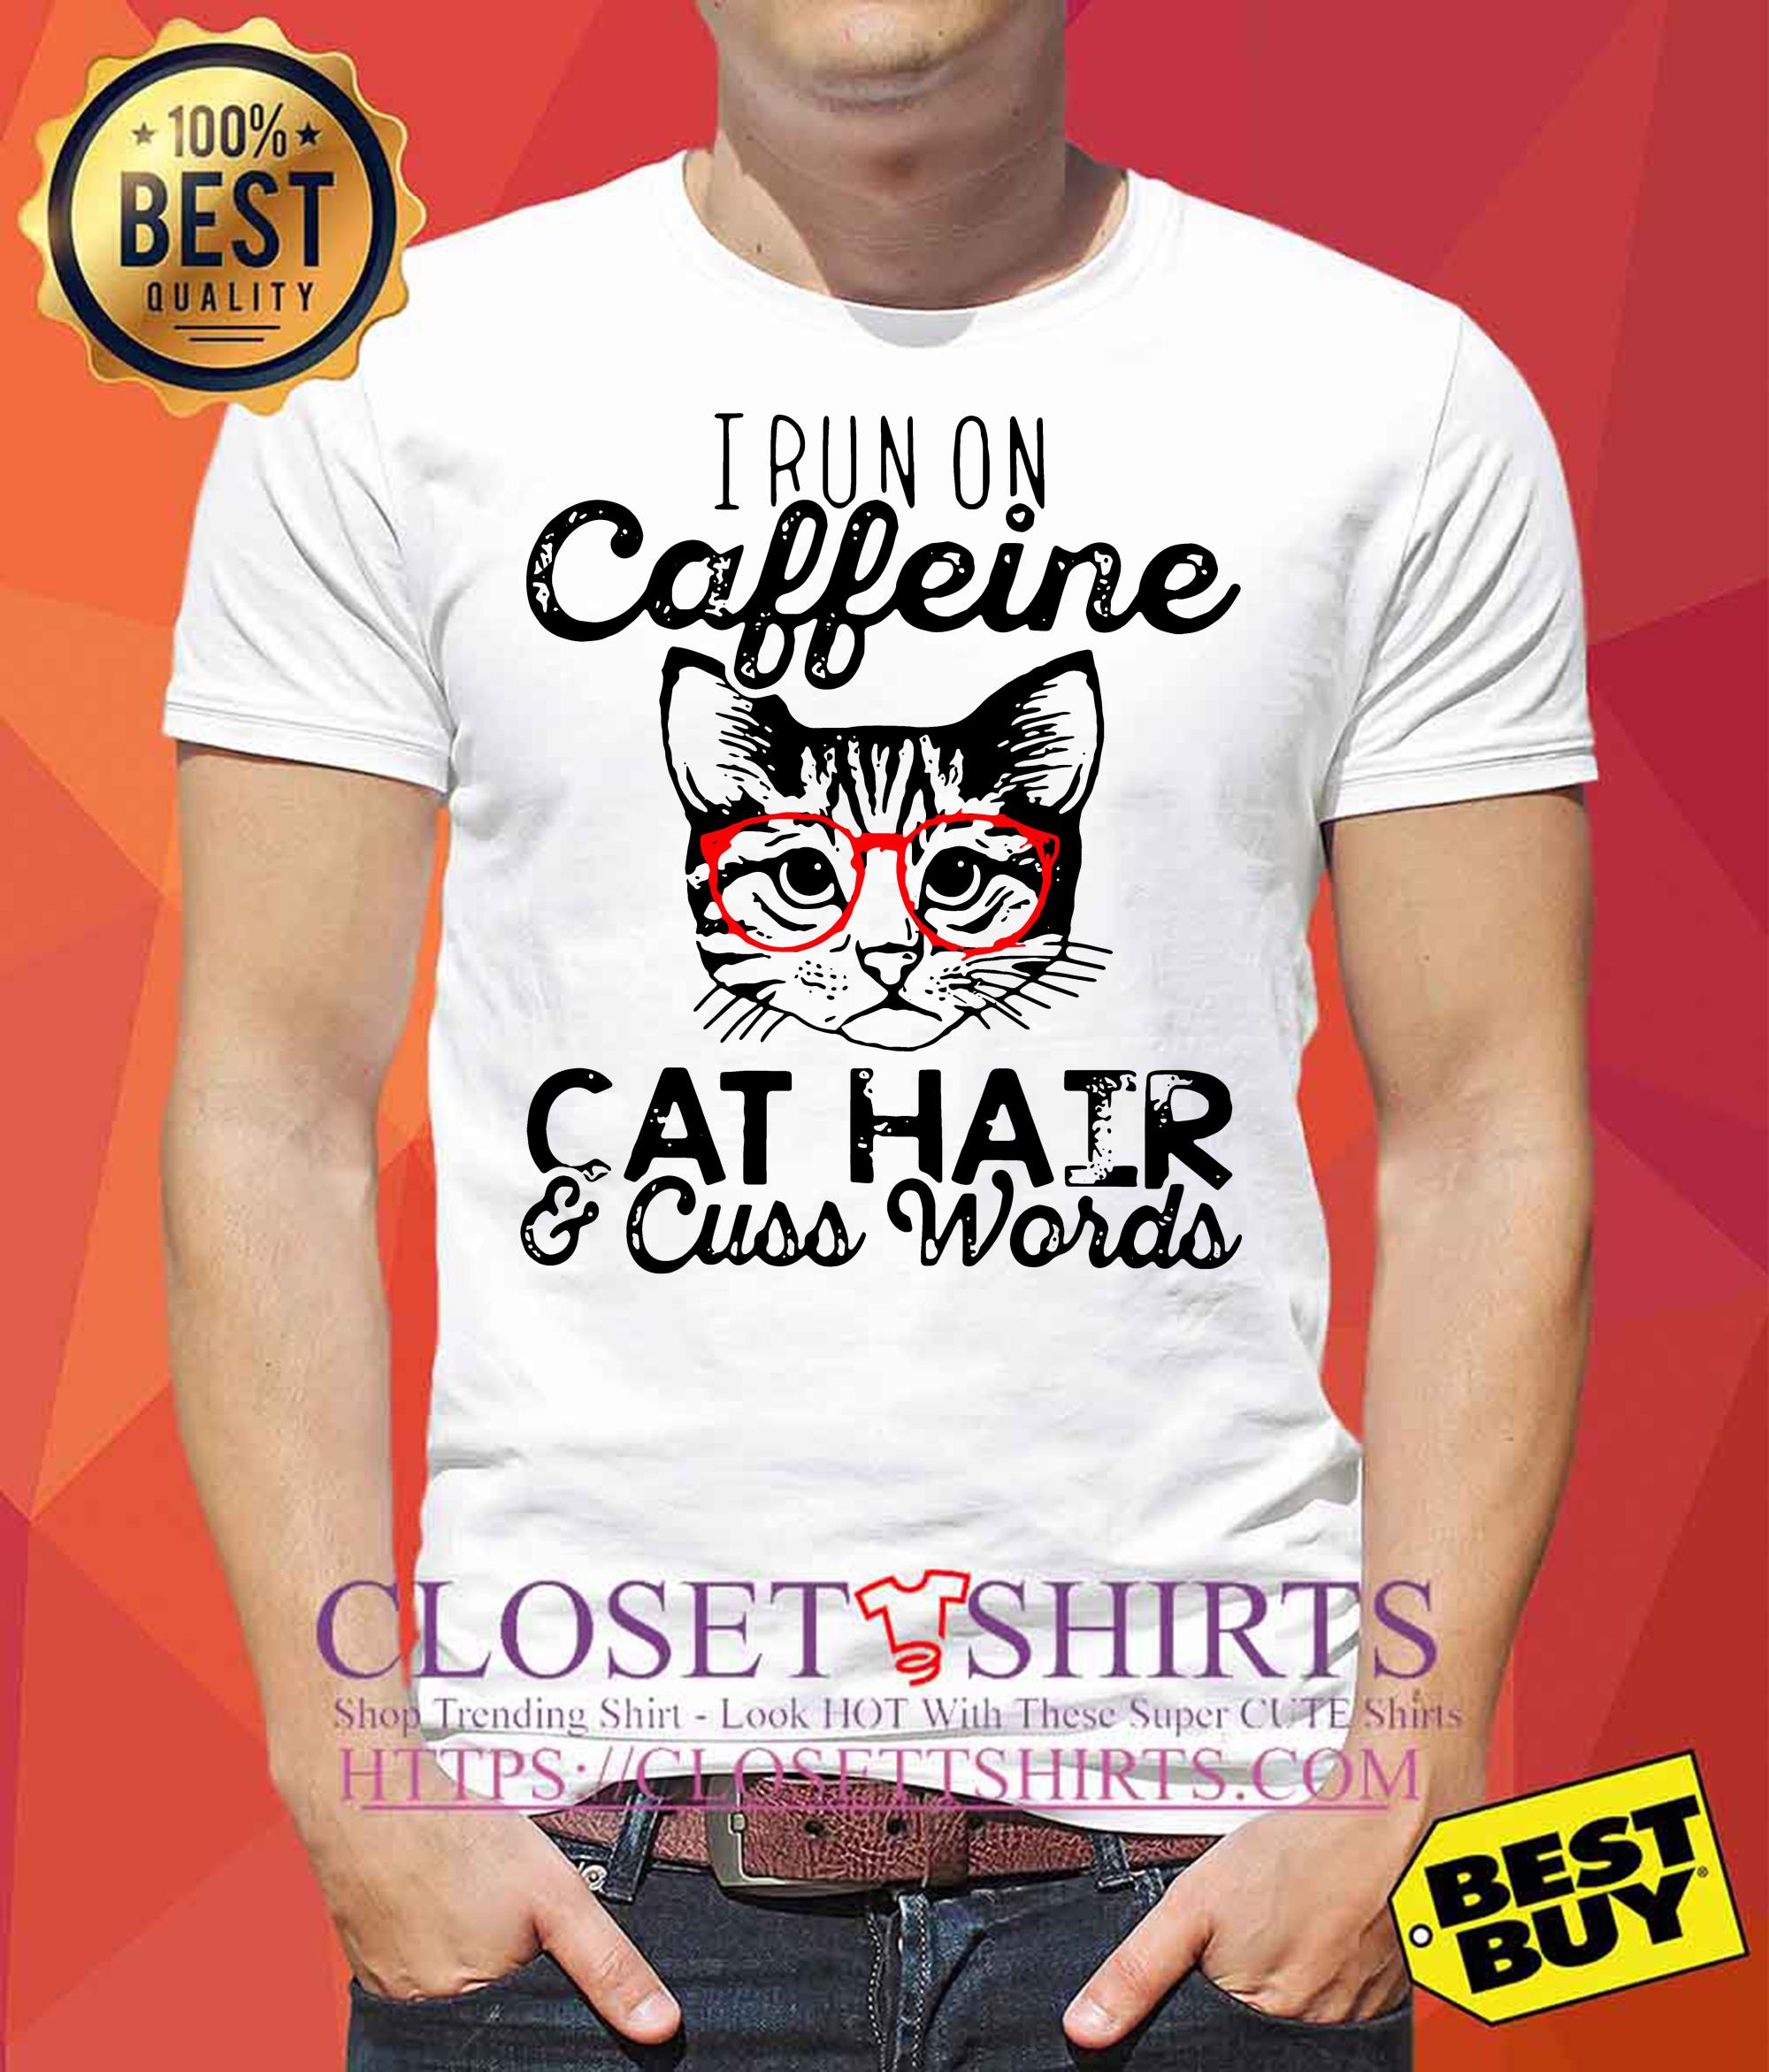 I run on caffeine cat hair cuss words funny shirt